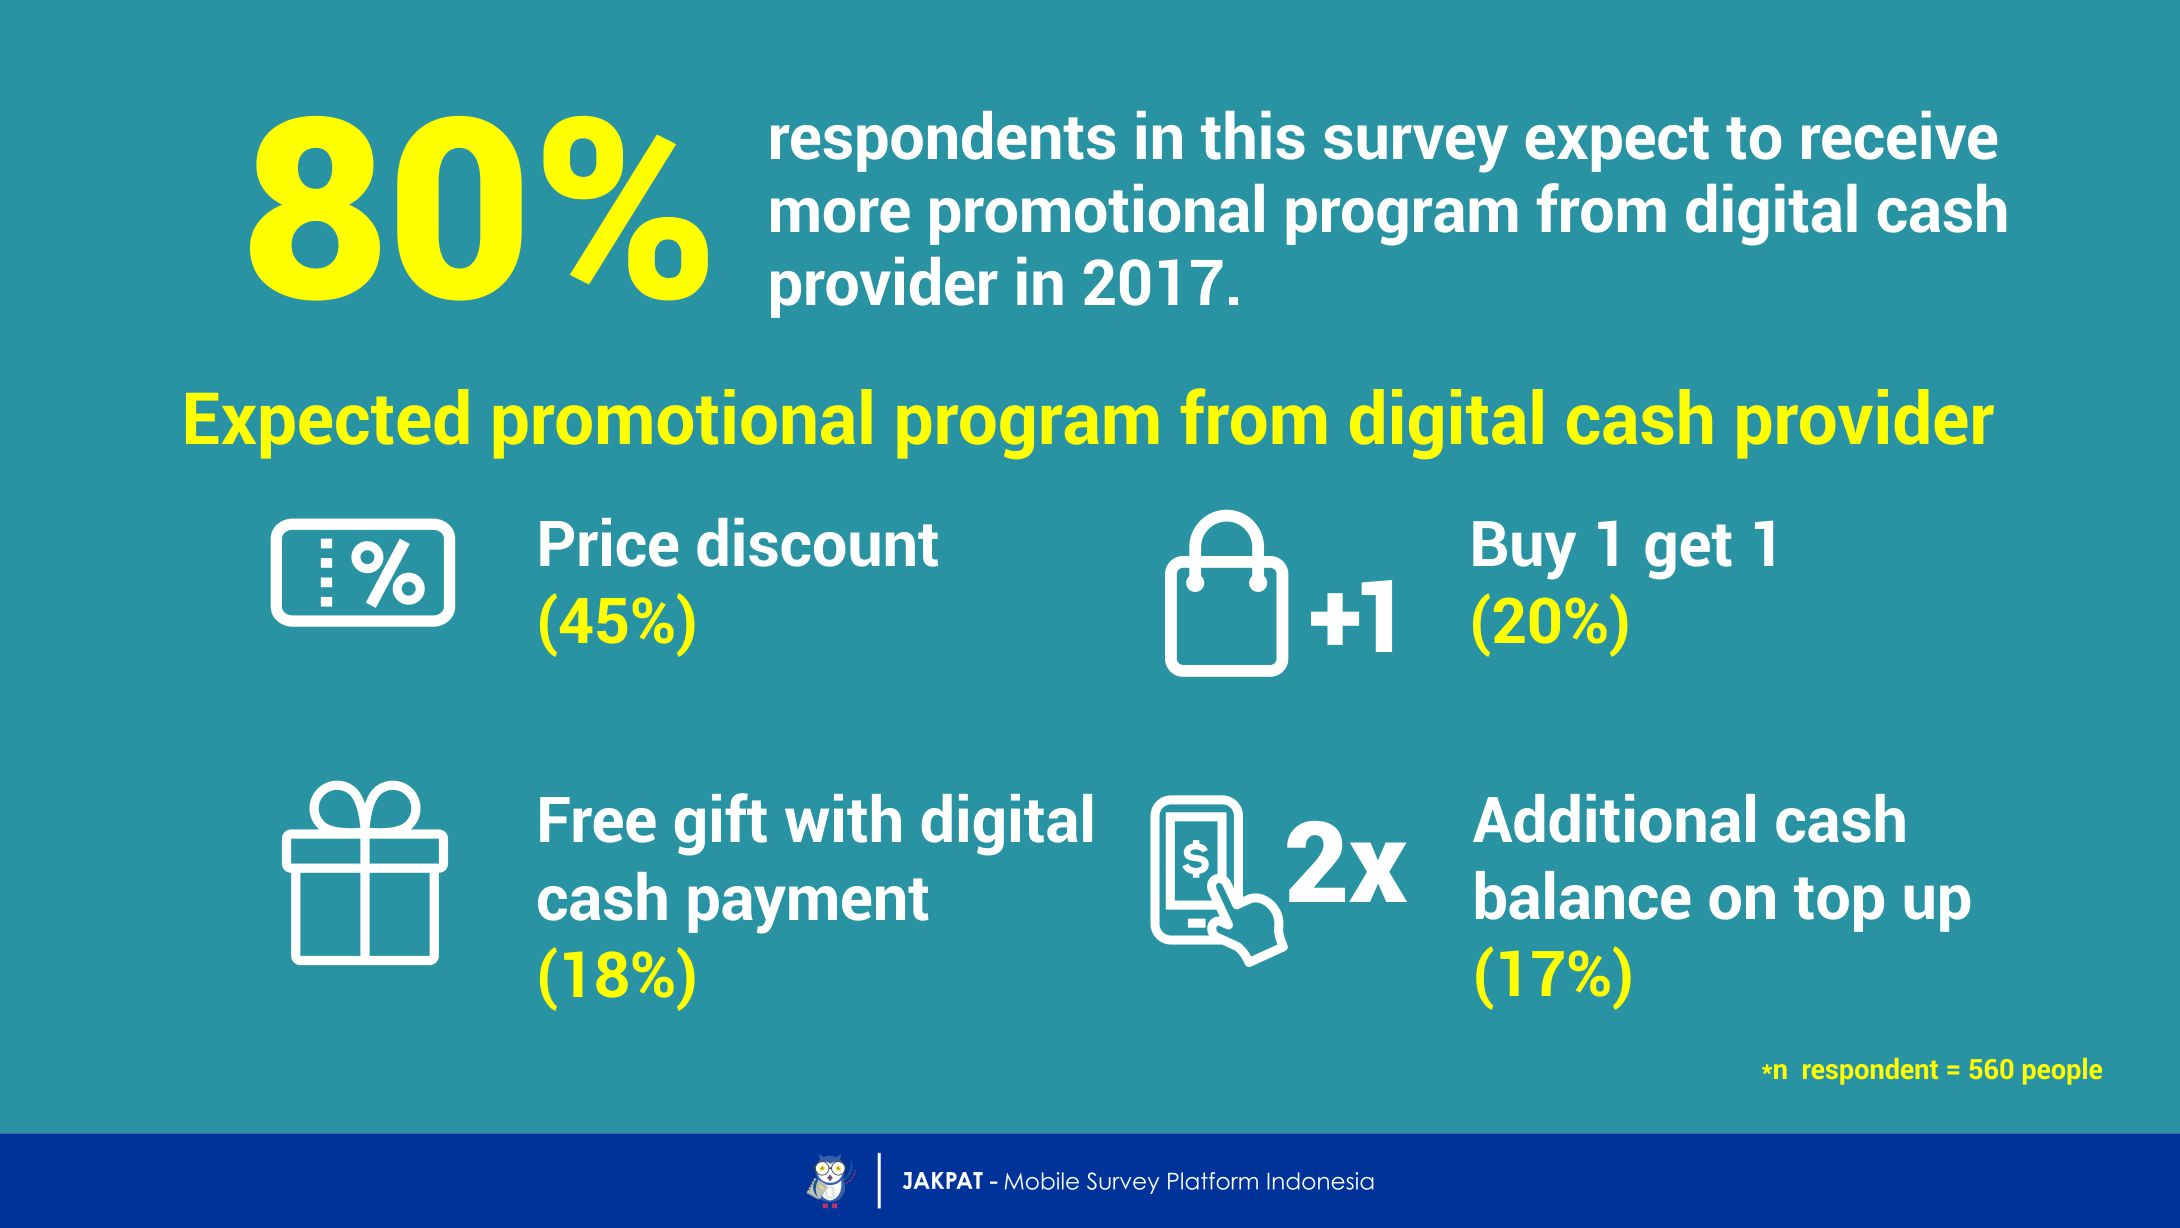 The Future of Digital Cash: Trend Prediction of Digital Cash Usage in 2017 - JAKPAT